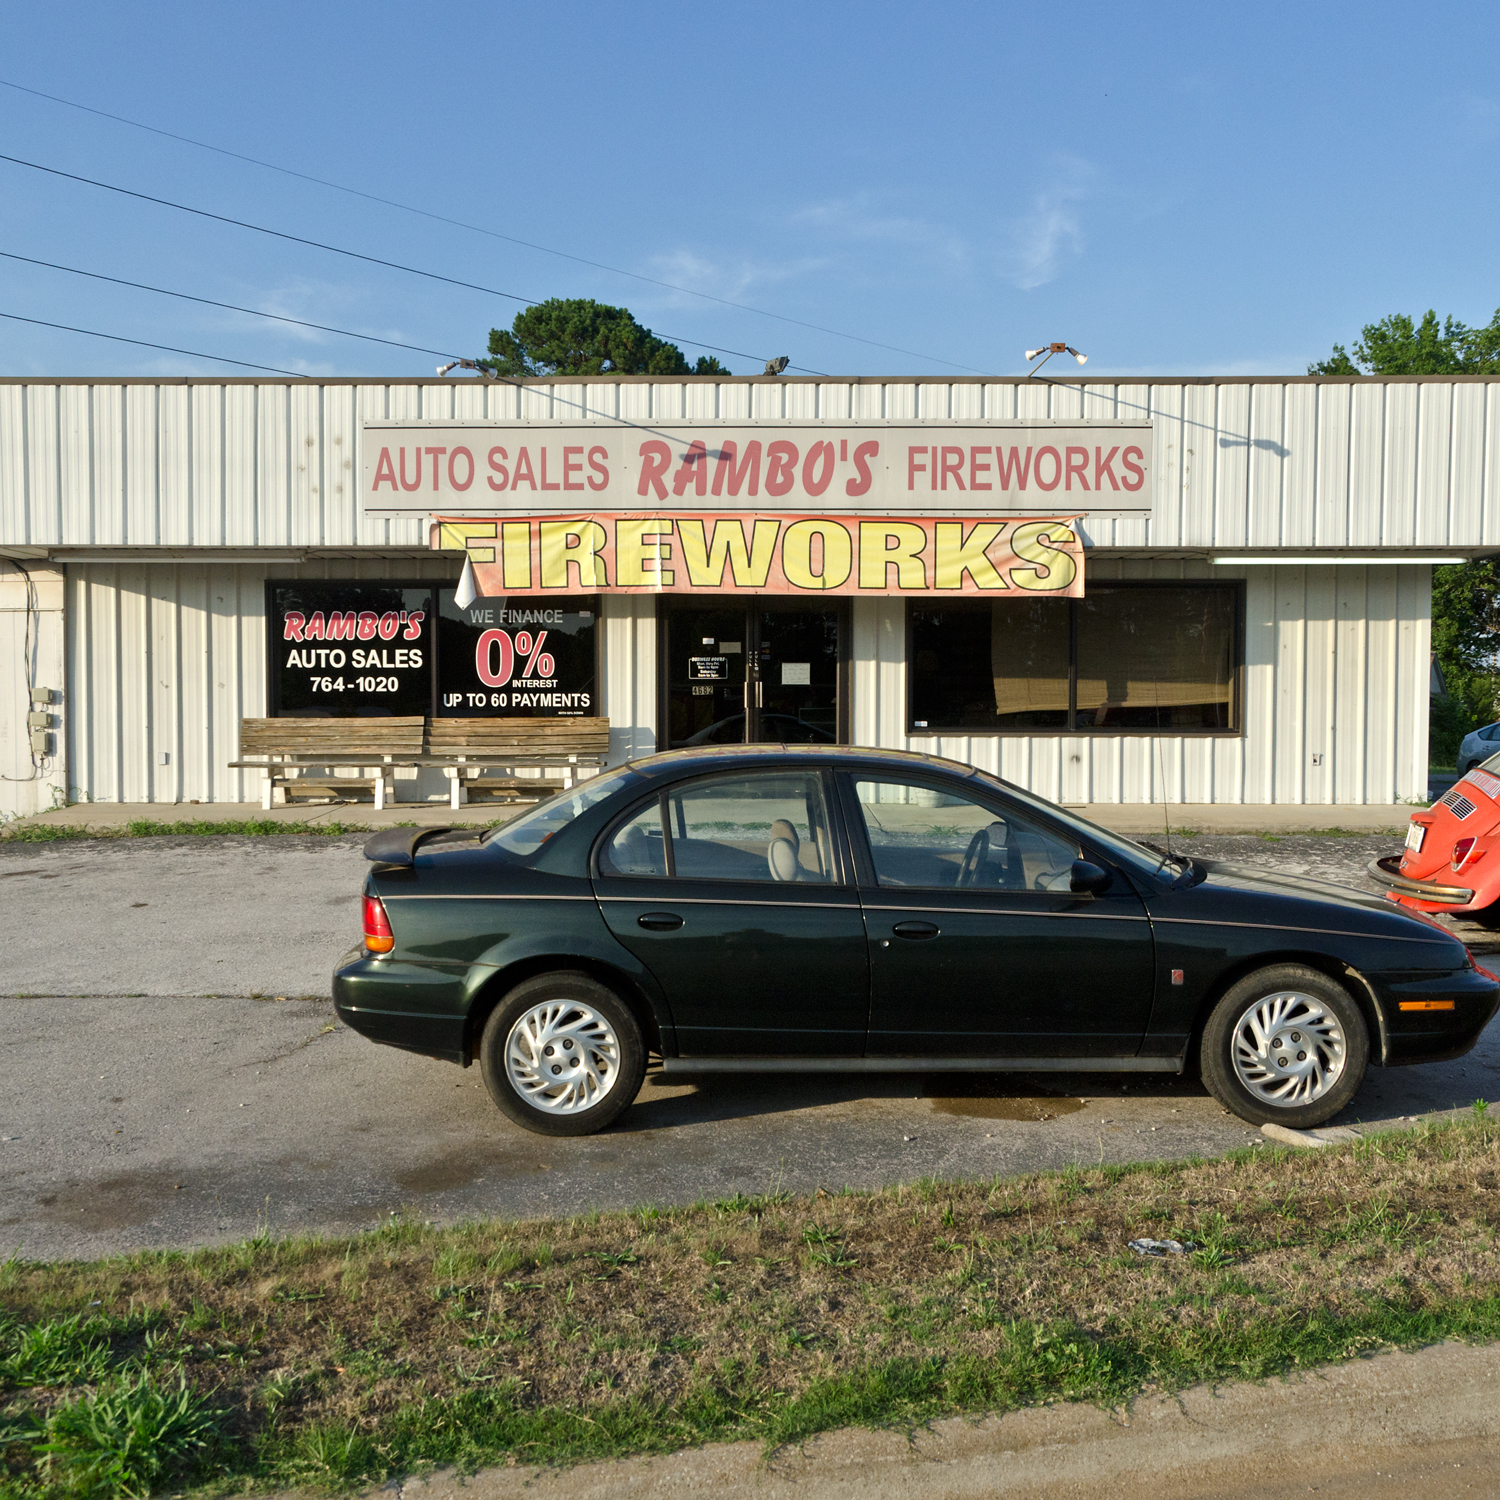 Rambo's Auto Sales and Fireworks. Huntsville, AL.